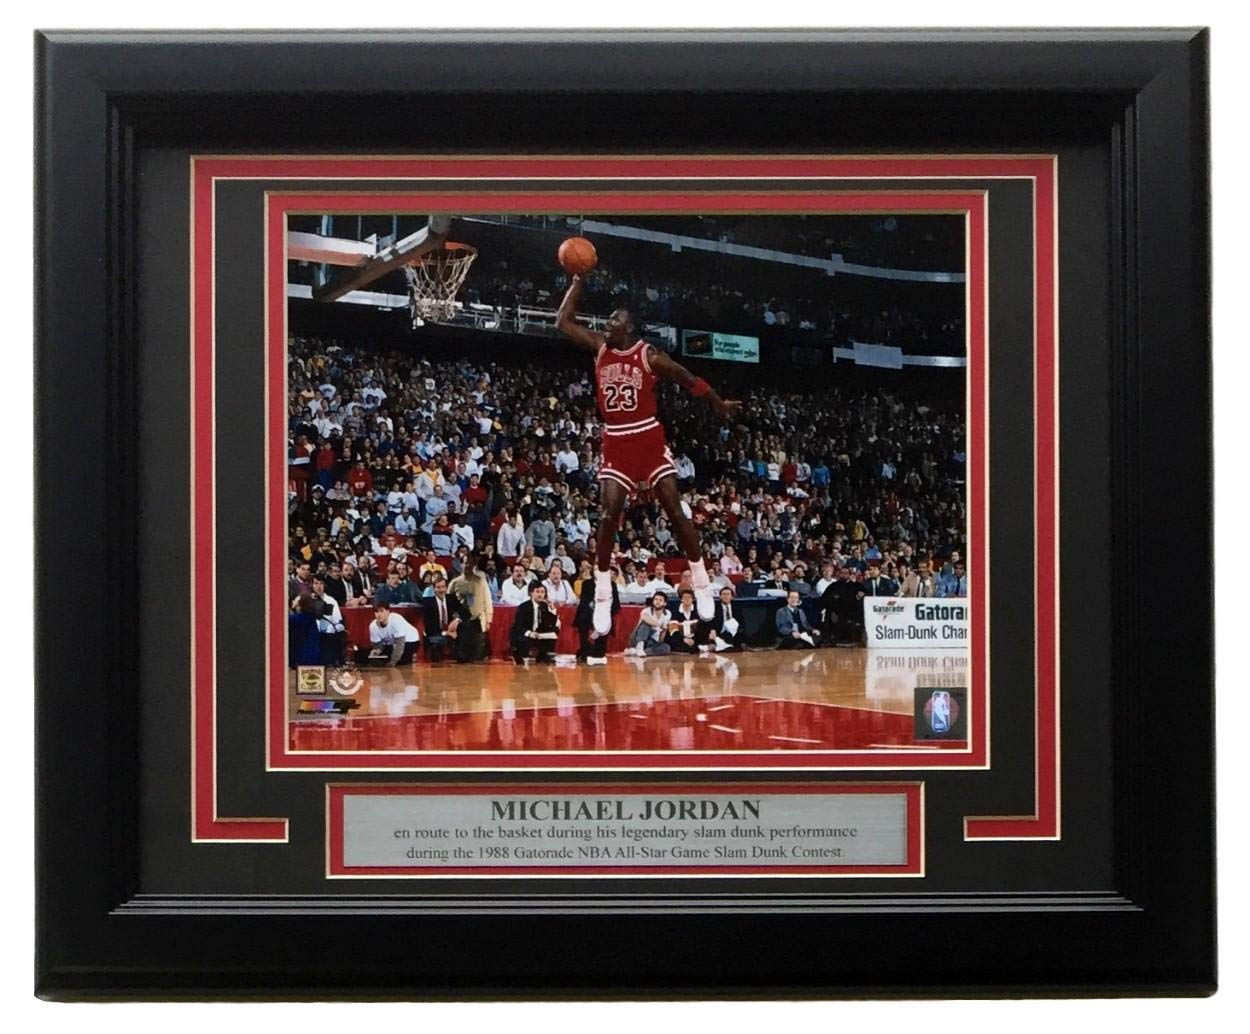 239691b44f4c Michael Jordan Framed Bulls 8x10 1988 Gatorade Slam Dunk Contest Spotlight  Photo